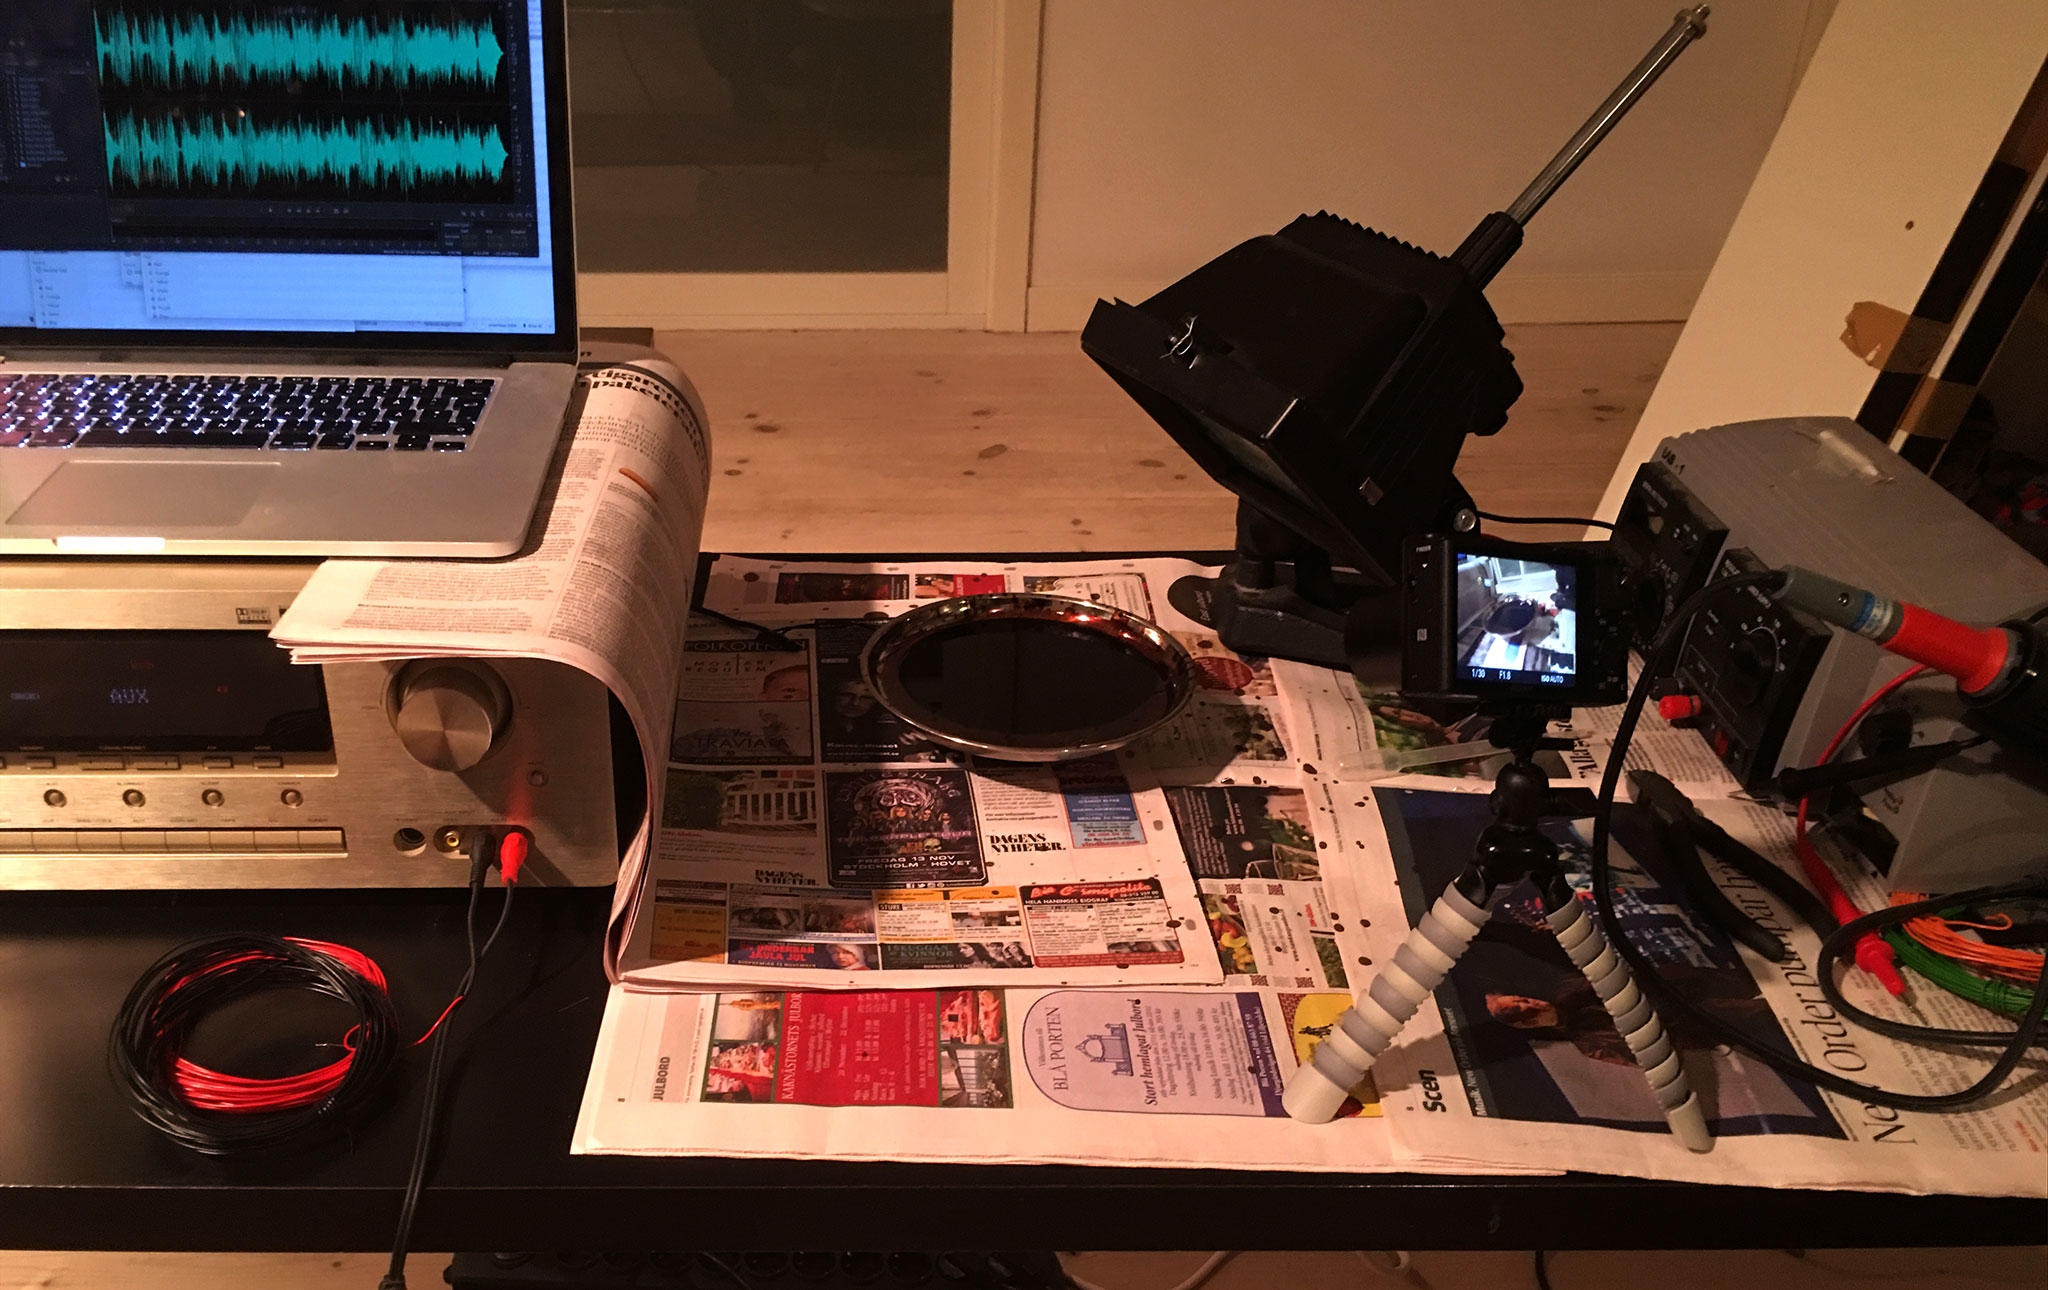 Experimental setup. Sony RX-100 IV capture in HFR mode.